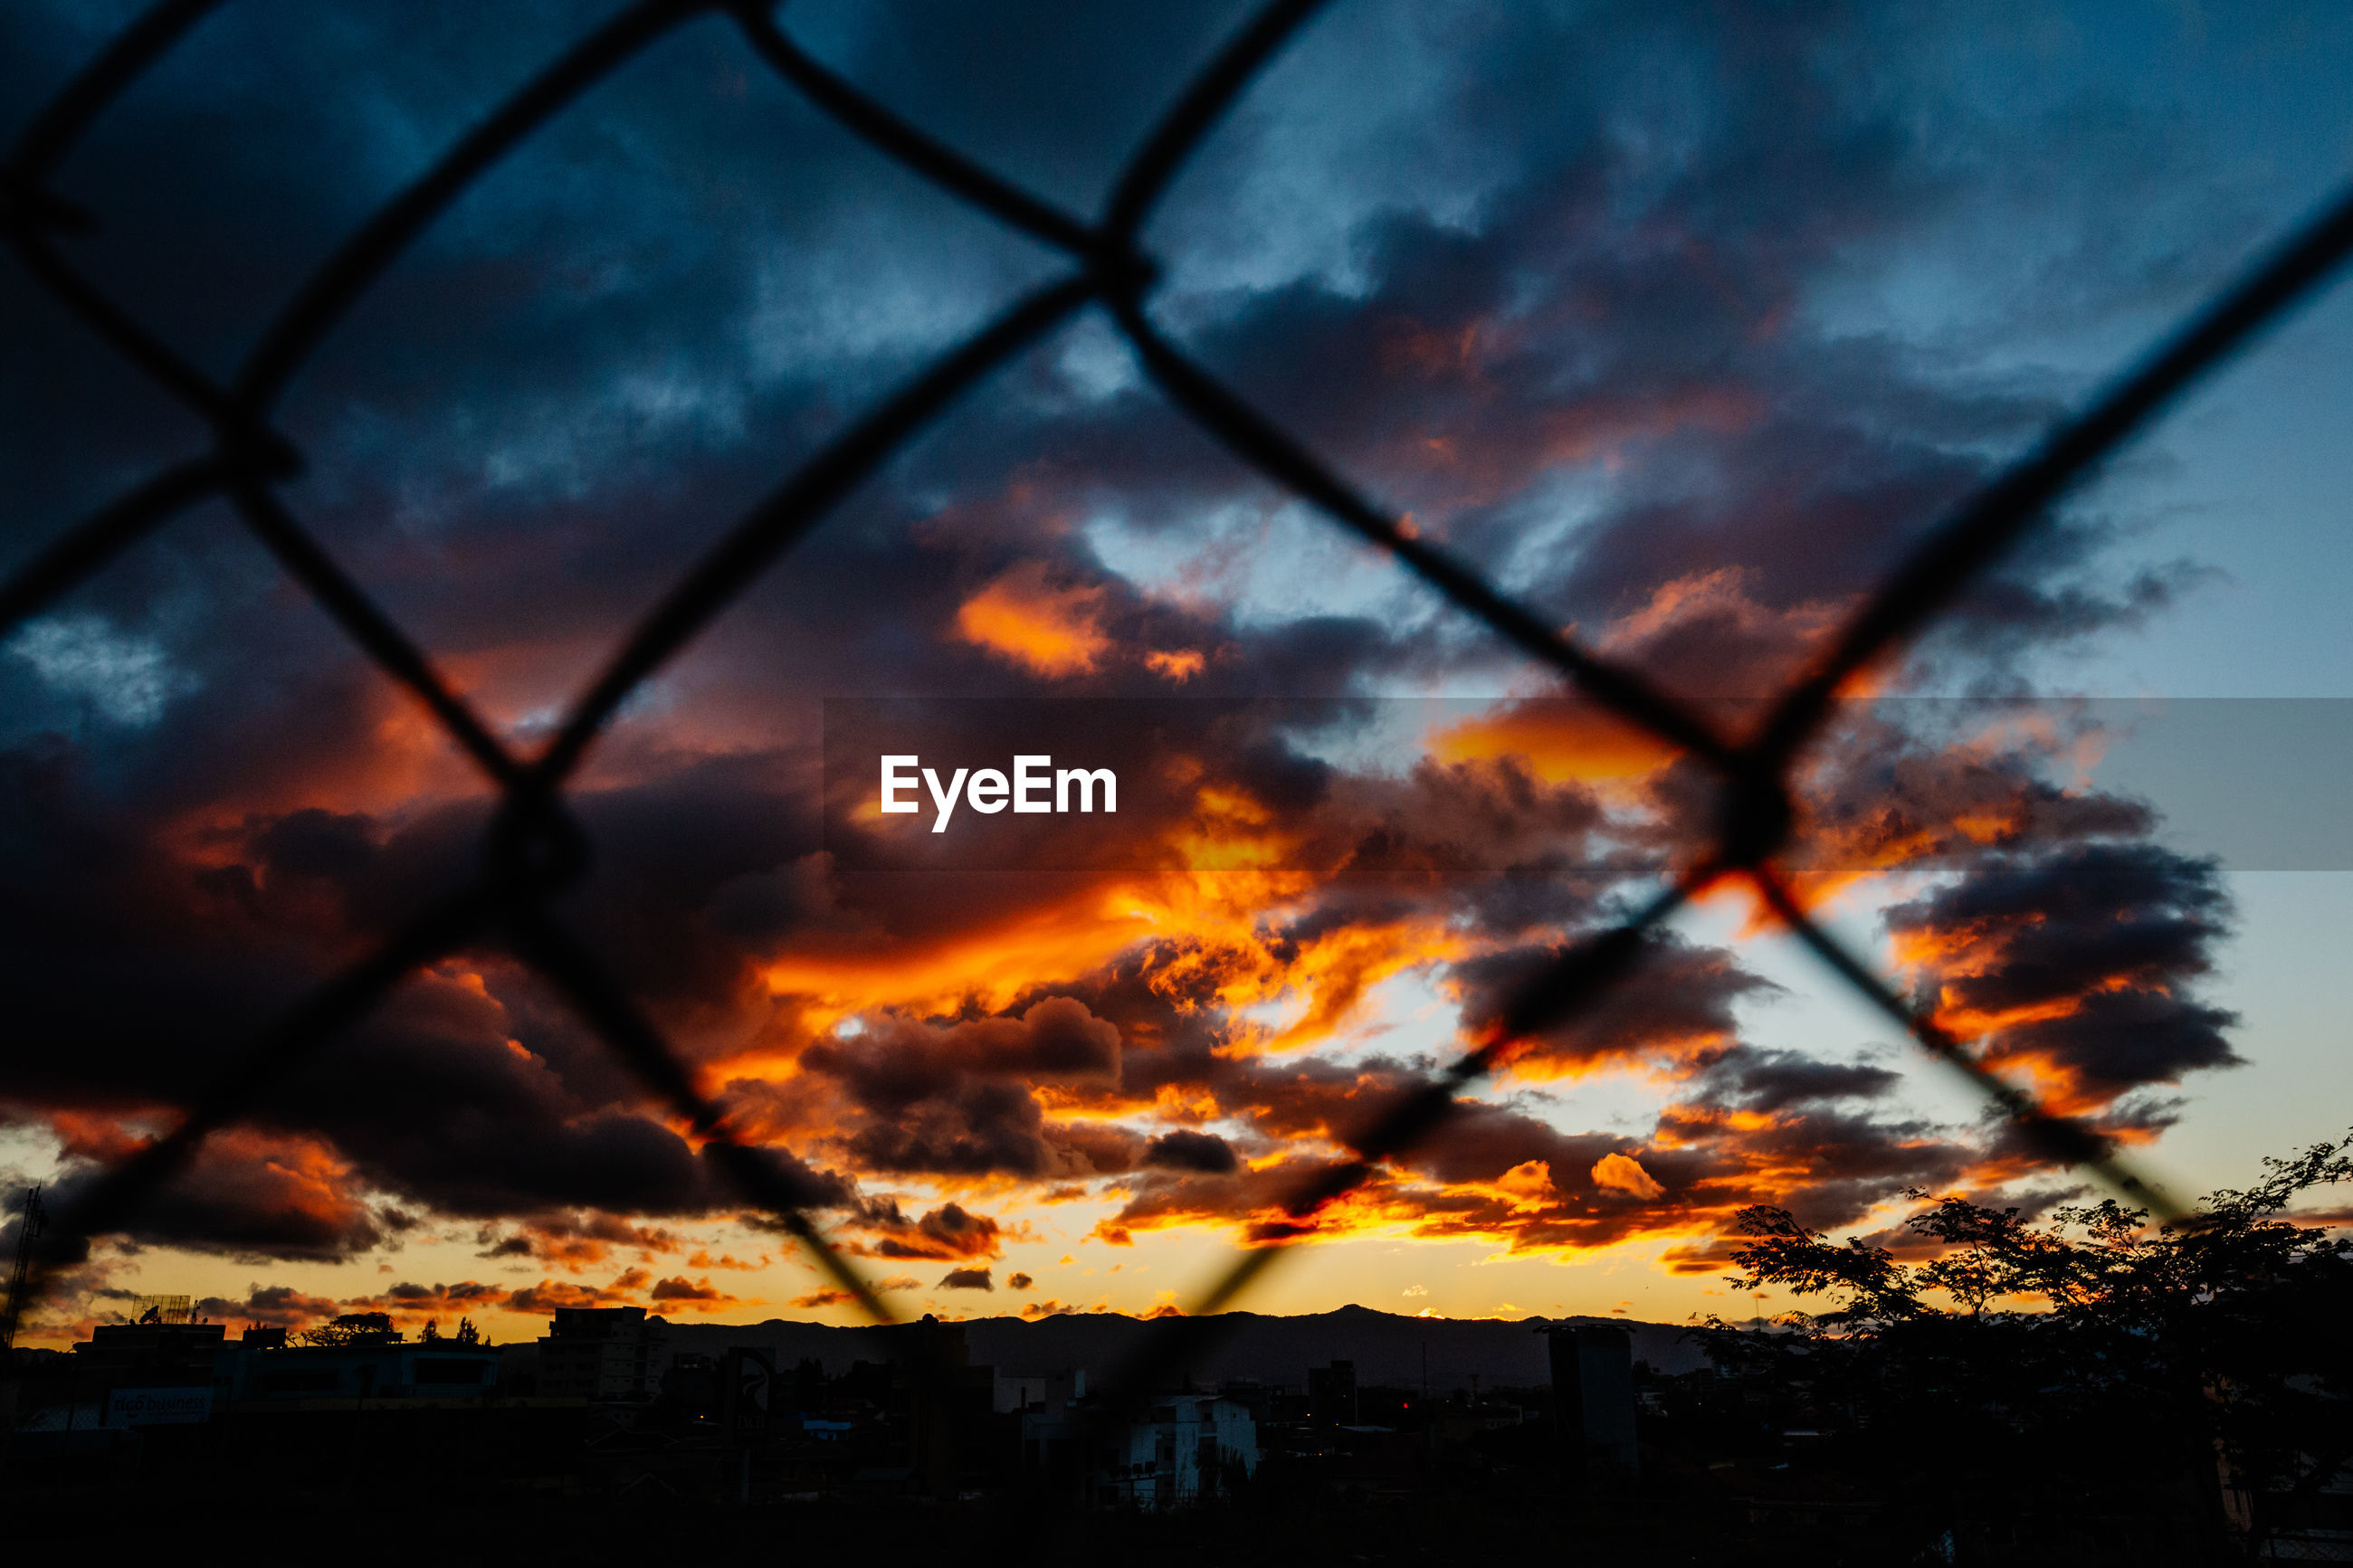 Cloudy sky seen through chainlink fence during sunset